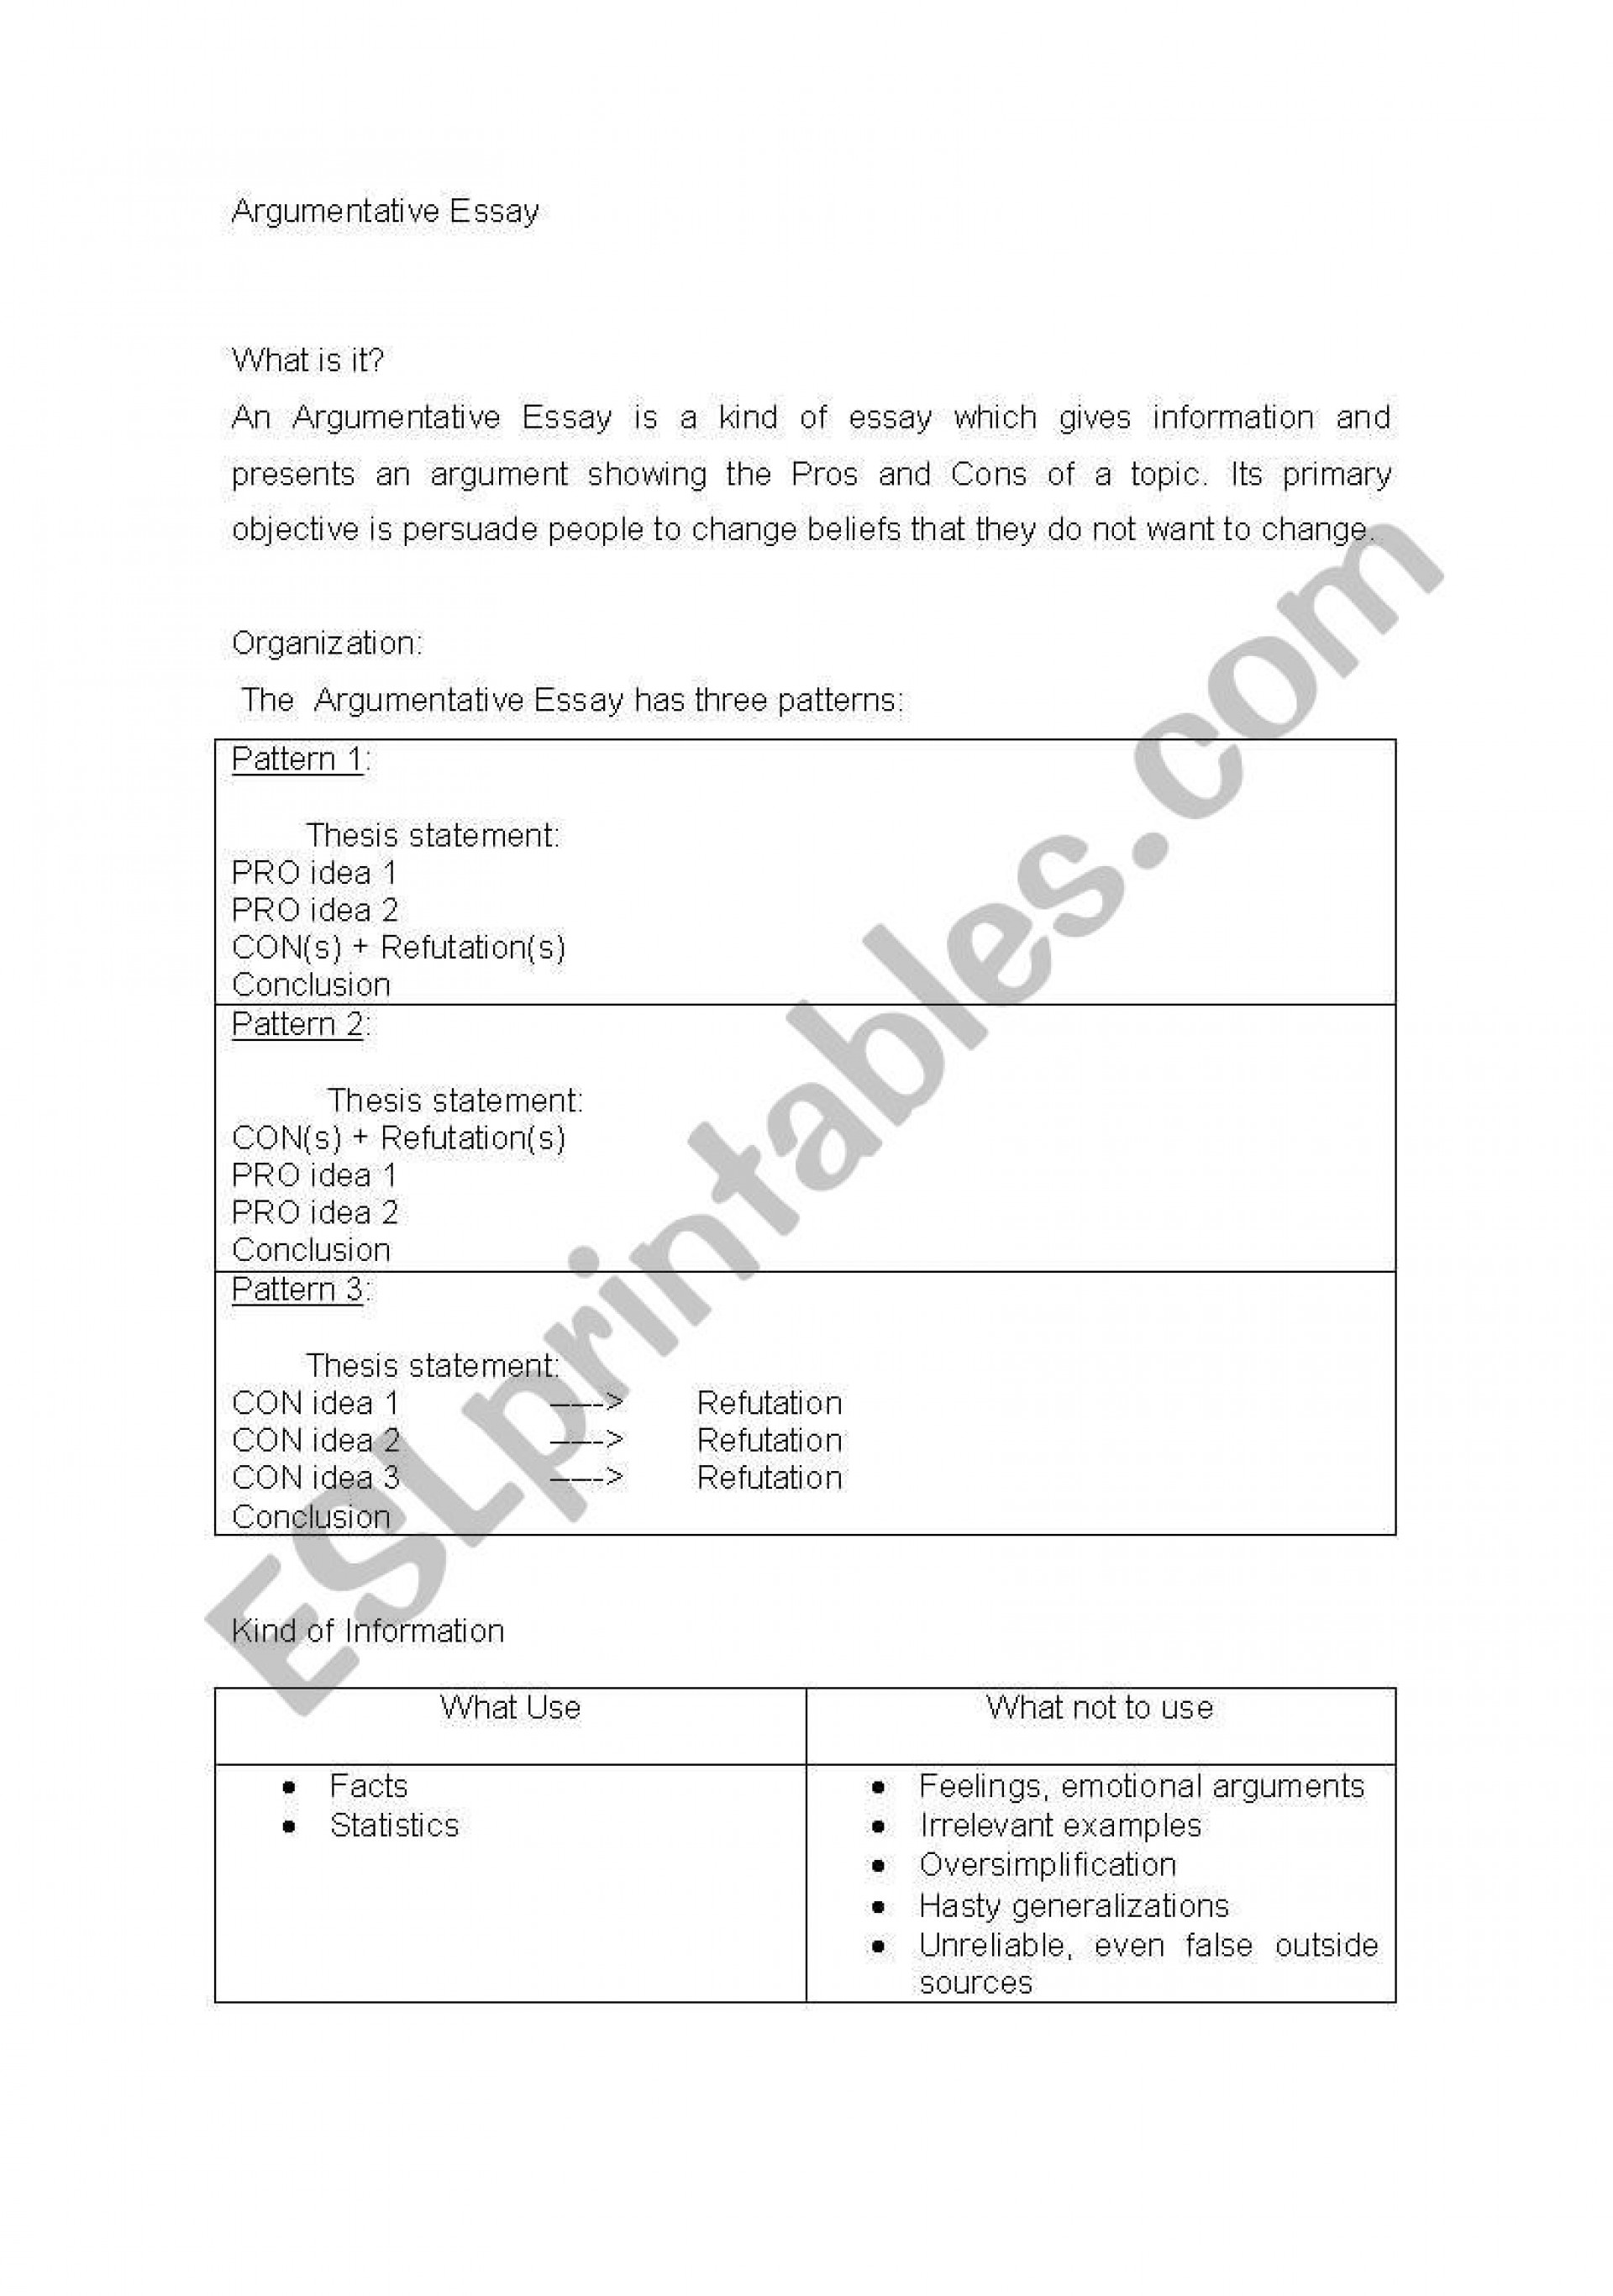 007 Argumentative Essay Esl Worksheet By Pixulina What Is An Ppt 578260 1 Brainly Definition Pdf Outlinet Topics And Its Parts Example Frightening Powerpoint Presentation Slides For Middle School 1920